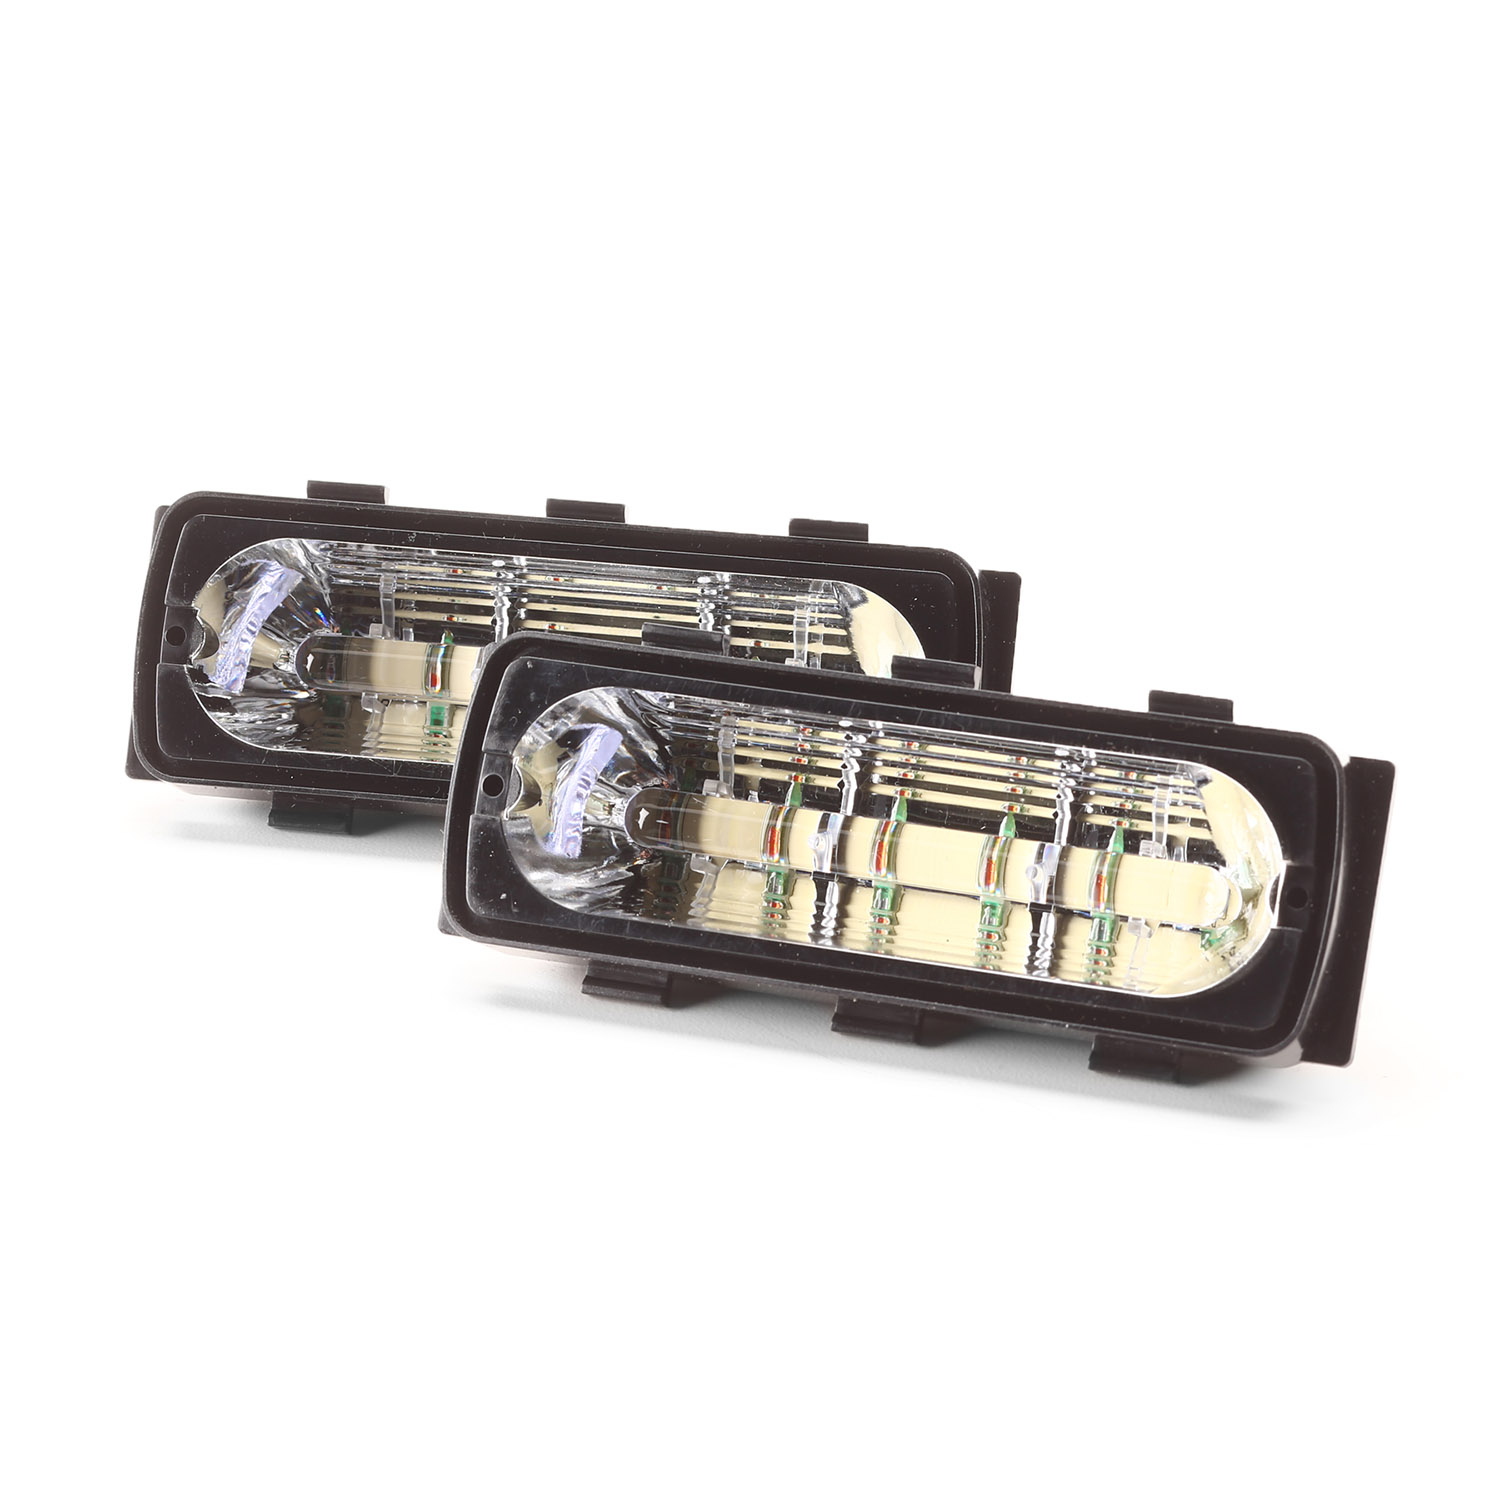 Whelen Engineering Liberty Lightbar 2-Head Kit